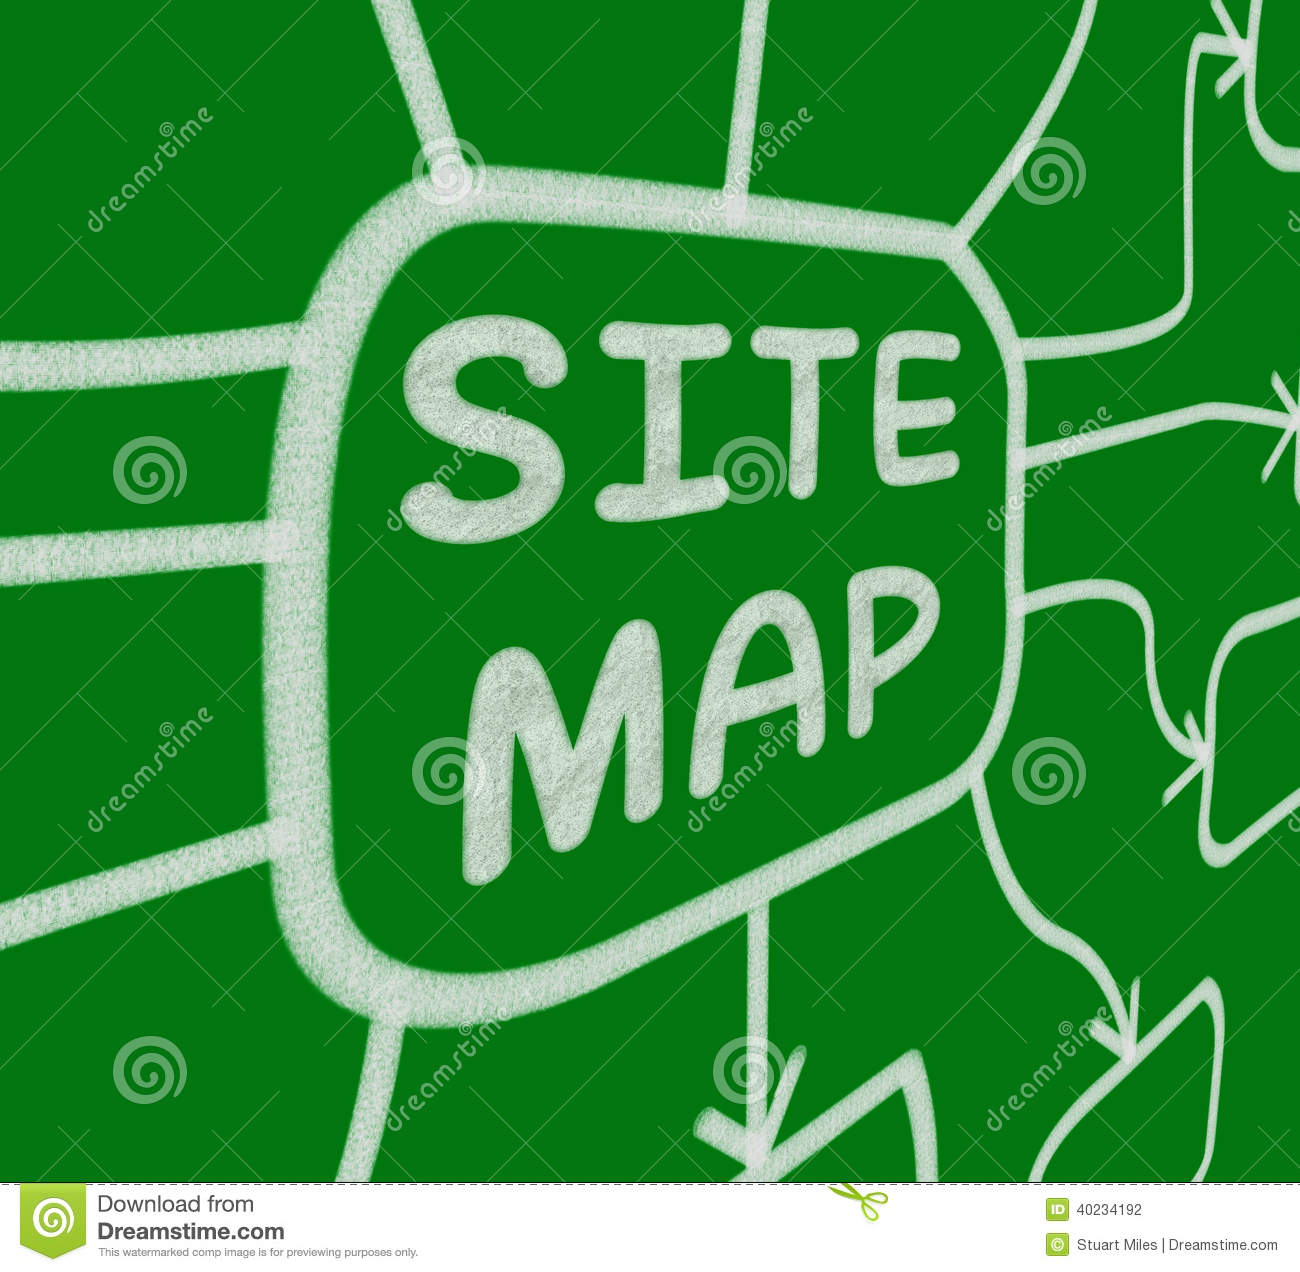 Site Map Diagram: Site Map Diagram Means Layout Of Website Pages Stock Illustration